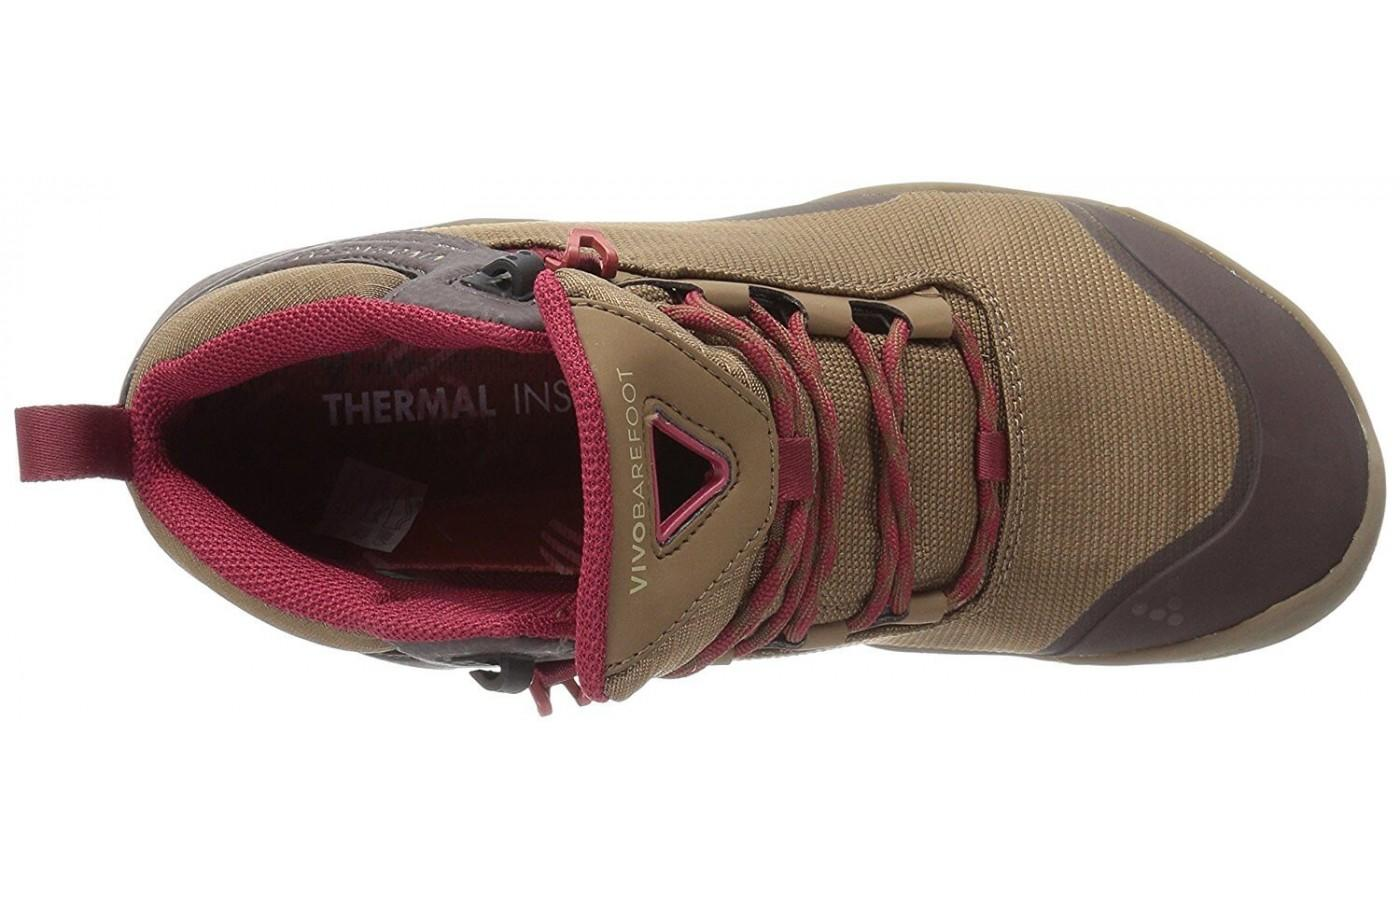 The thermal interior helps regulate the temperature of the shoe.